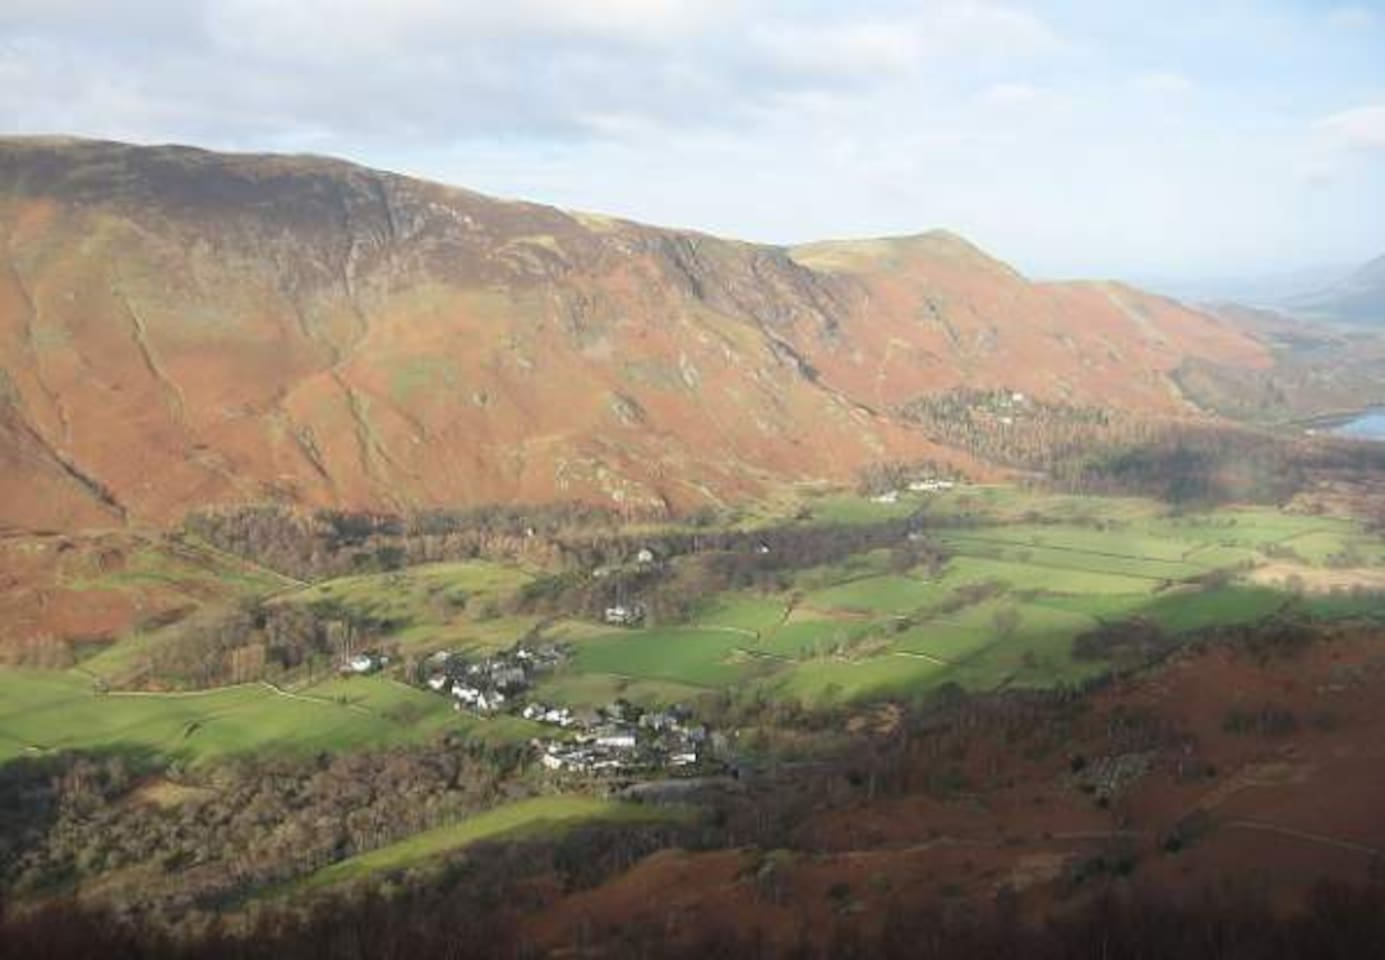 Grange village with Catbells, Maiden Moor and High Spy in the background